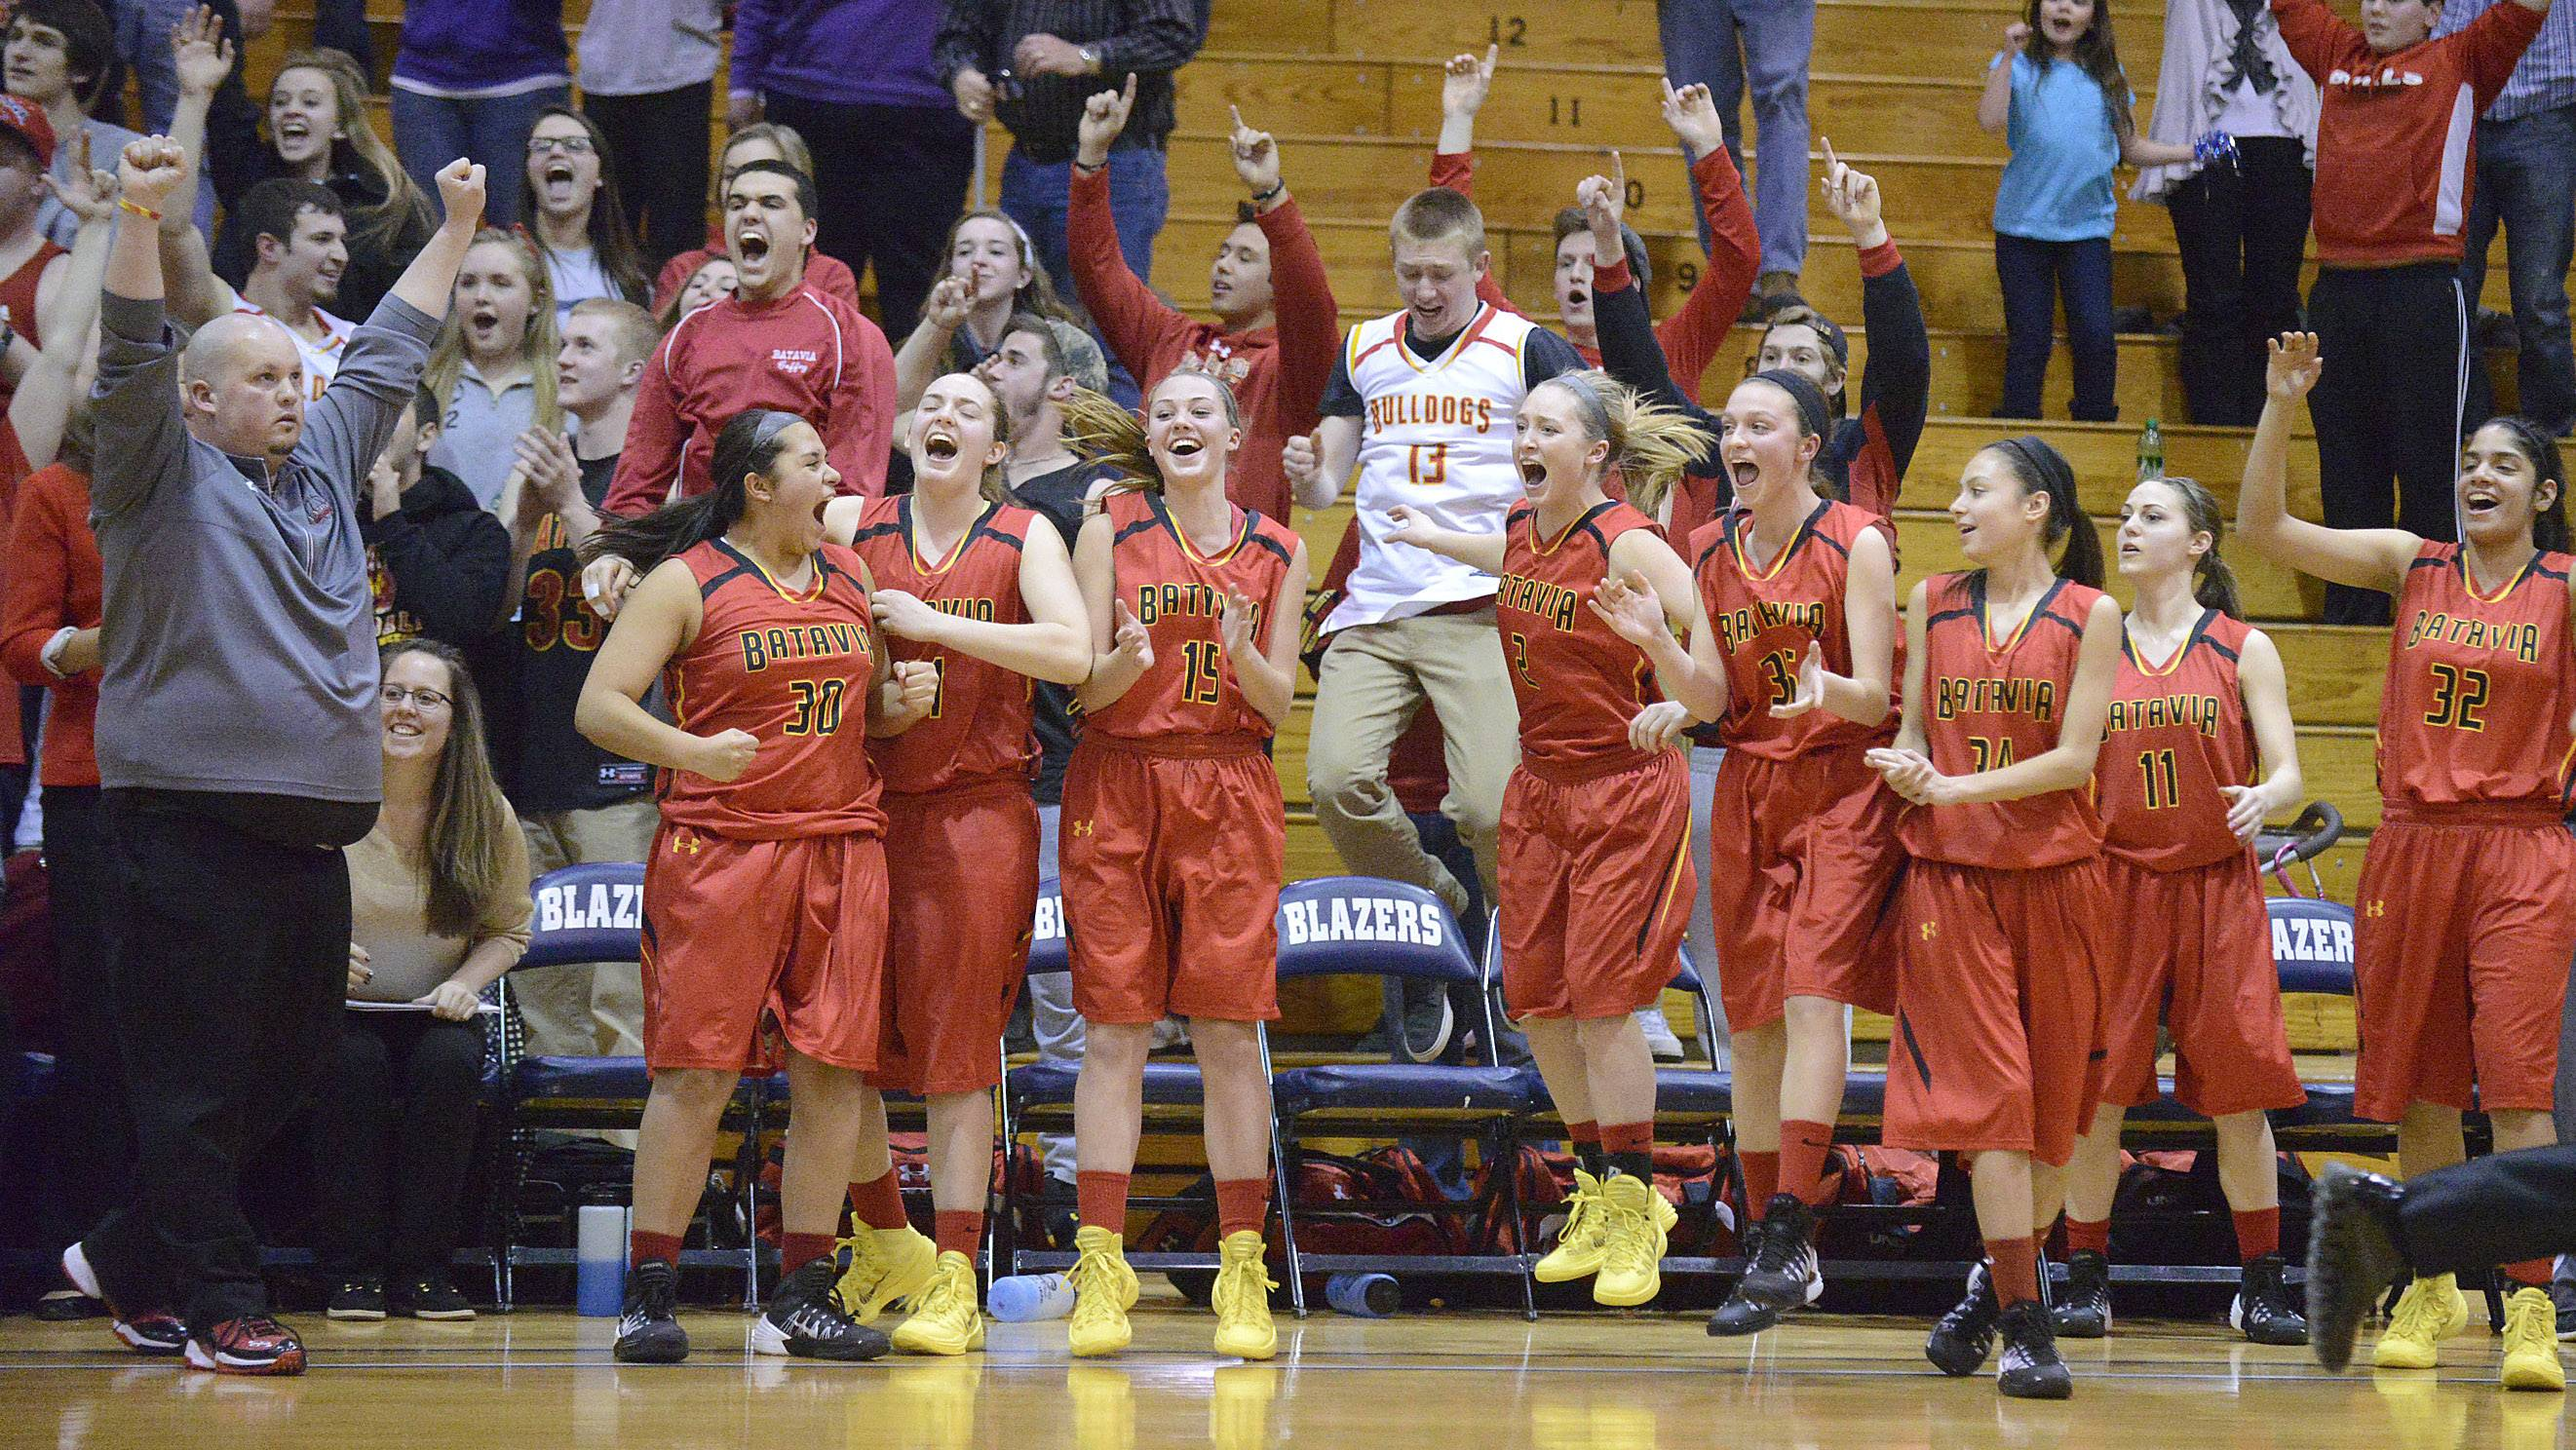 Above: Batavia coach Kevin Jensen, far left, and the Bulldogs react to beating Downers Grove North on Tuesday at Addison Trail. Below: Geneva players swarm Janie McCloughan after the junior made the winning free throw with .8 seconds left against Wheaton Warrenville South. The Bulldogs and Vikings return to Addison at 7 p.m. Thursday to play for the sectional championship.